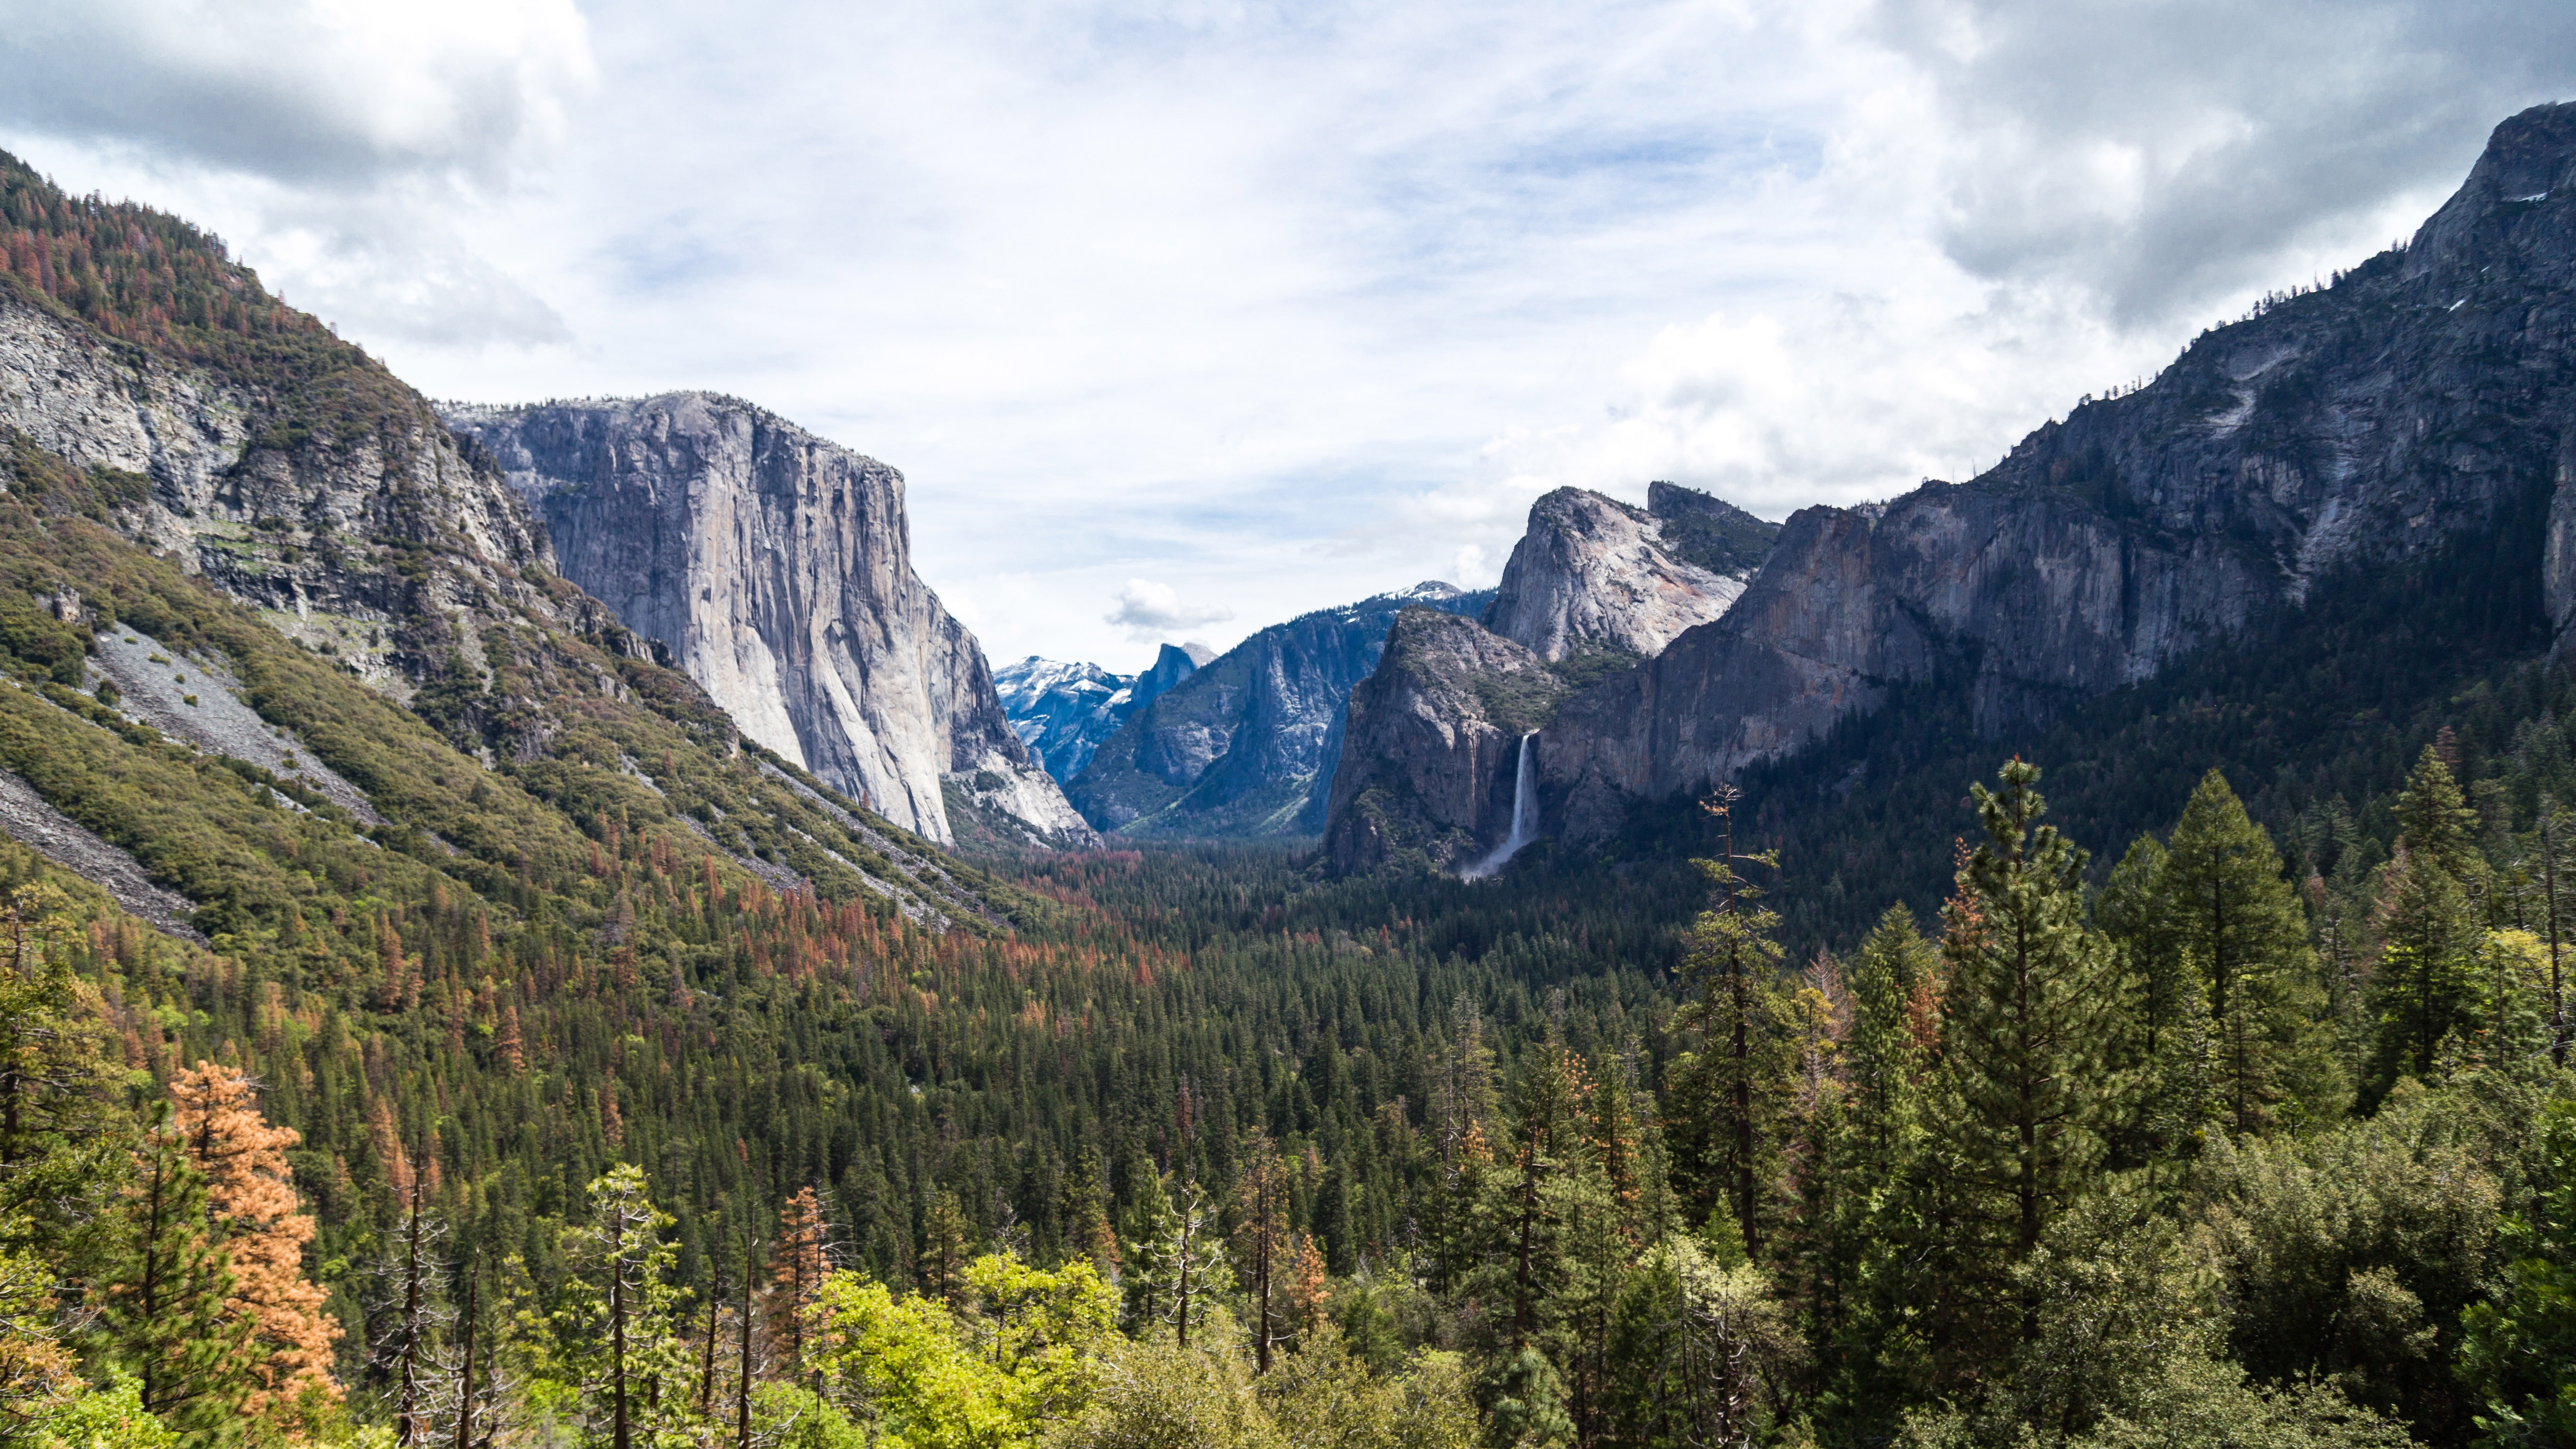 Landscape of the Valley at Yosemite National Park ...